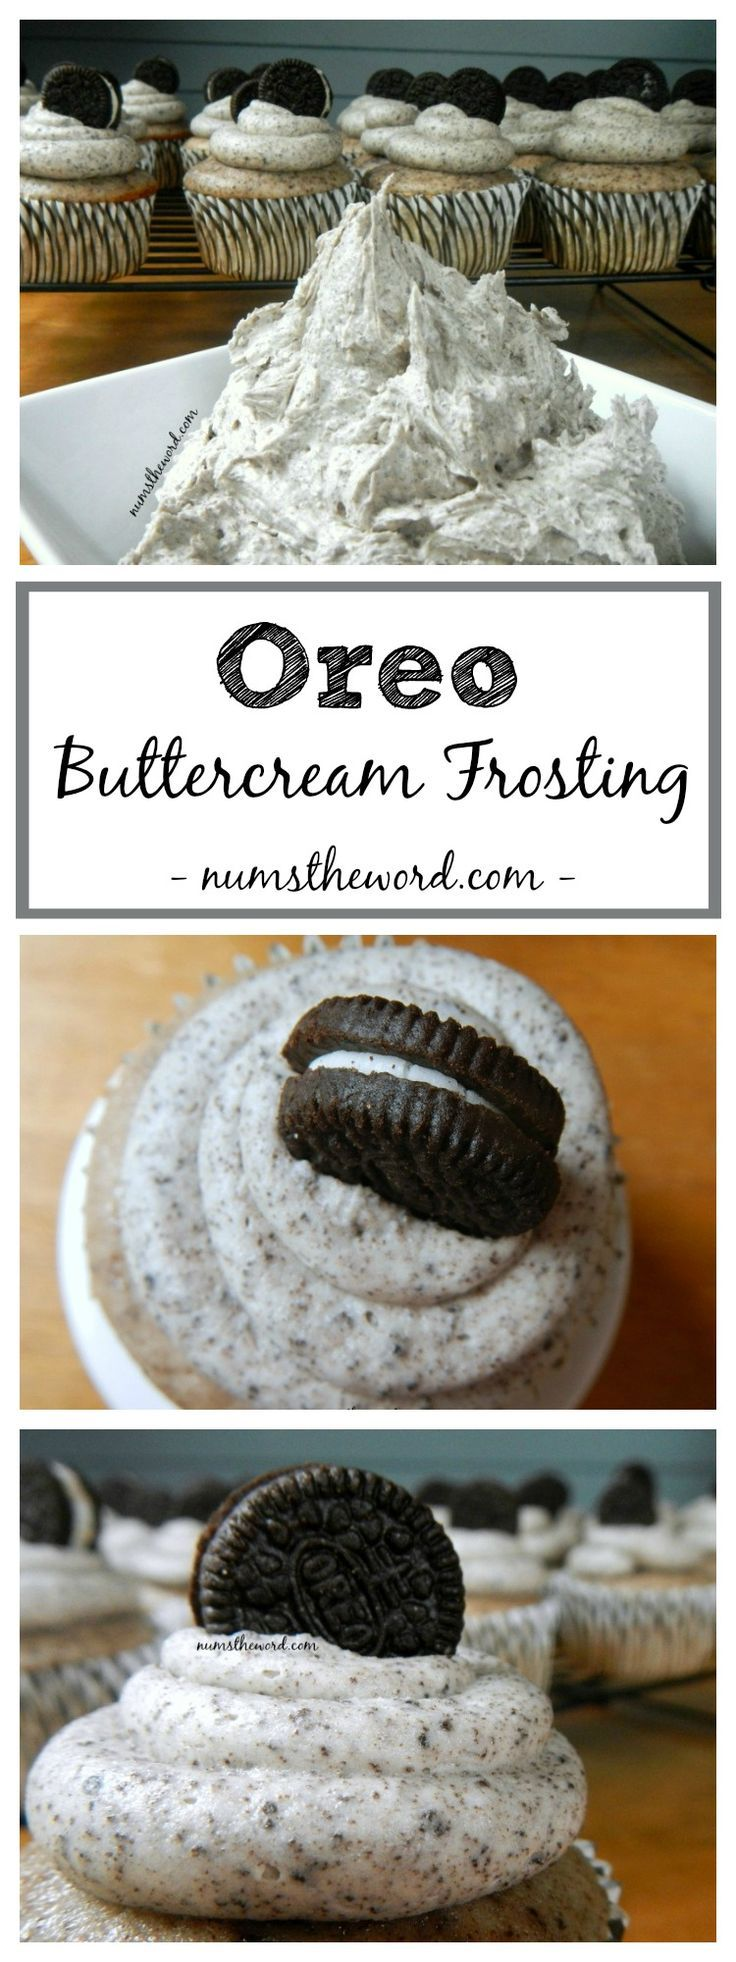 *VIDEO* Oreo Buttercream Frosting is the BEST frosting you'll ever eat. It tastes JUST LIKE AN OREO and is perfect as a cake frosting or a cupcake frosting!